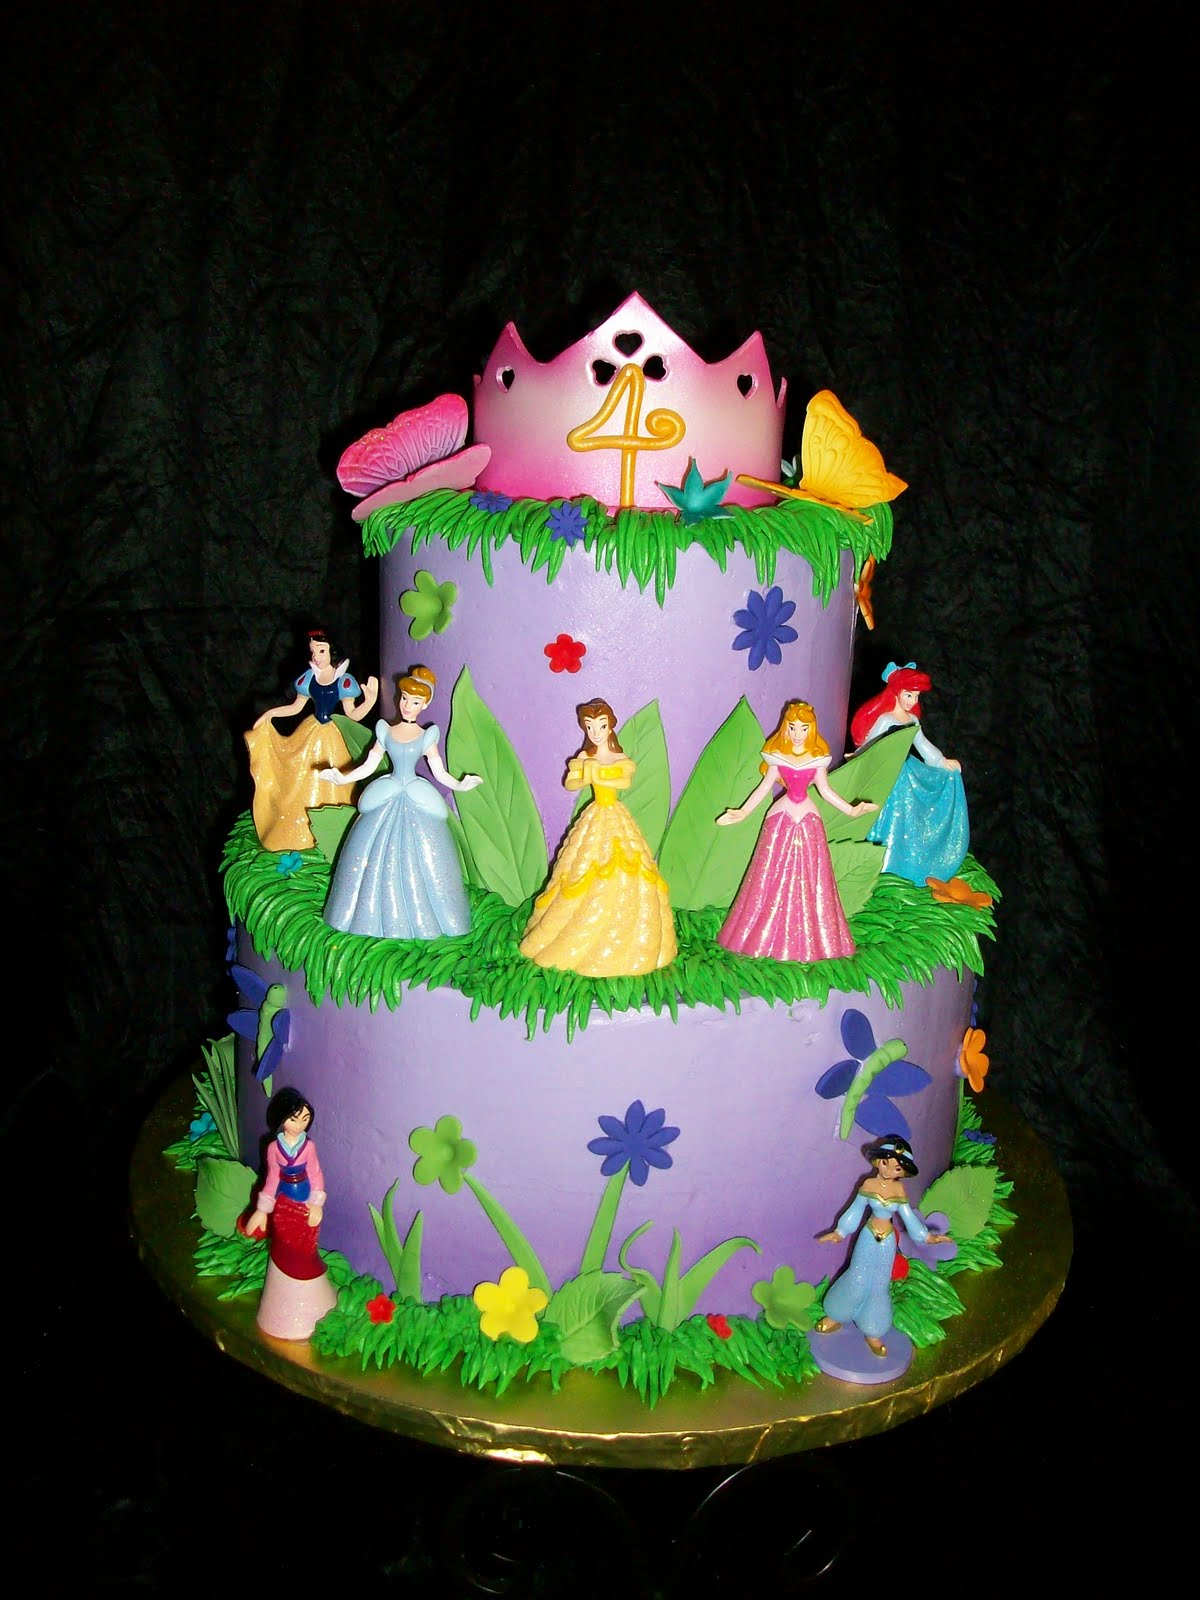 Birthday Cake Pictures Of Princess : PRINCESS BIRTHDAY CAKE